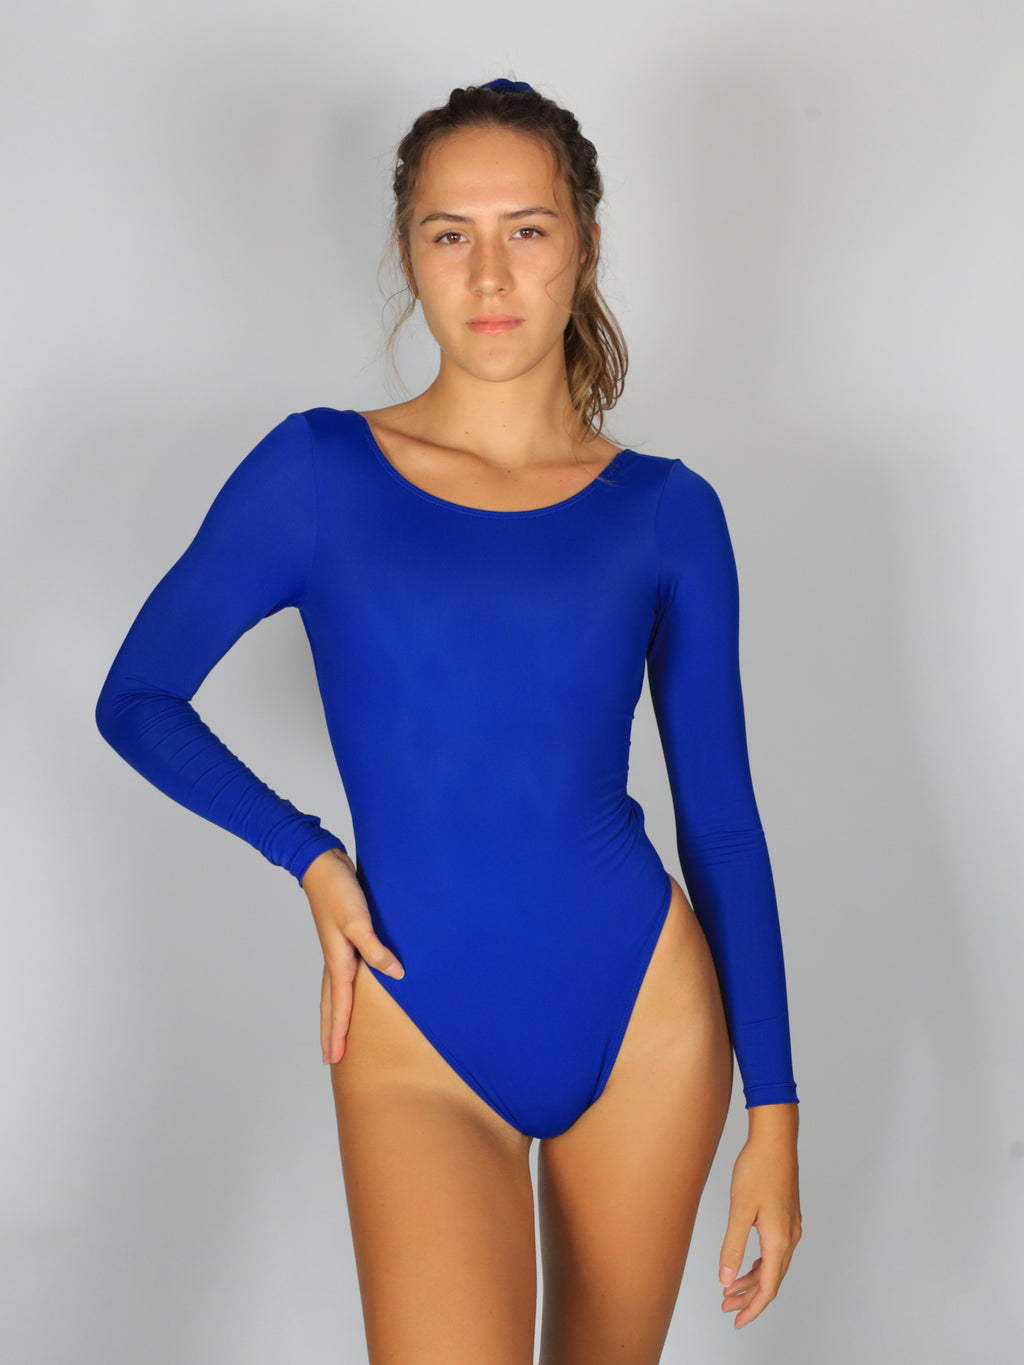 Daisy Duke One-Piece / Indigo